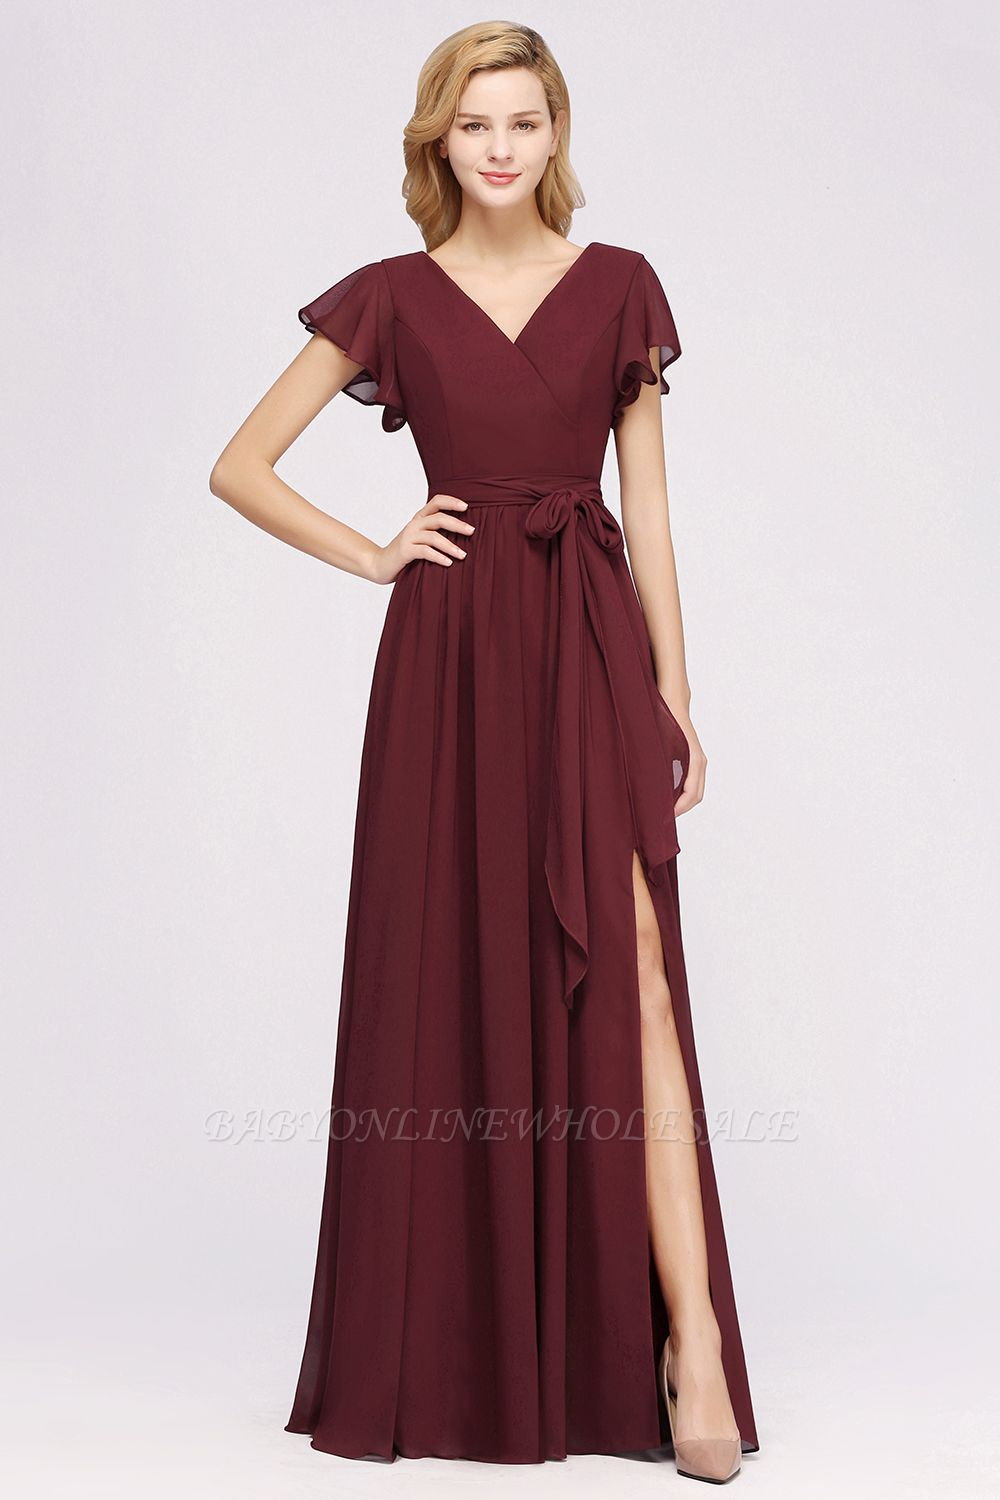 elegant A-line Chiffon V-Neck Short-Sleeves Floor-Length Bridesmaid Dresses with Bow Sash